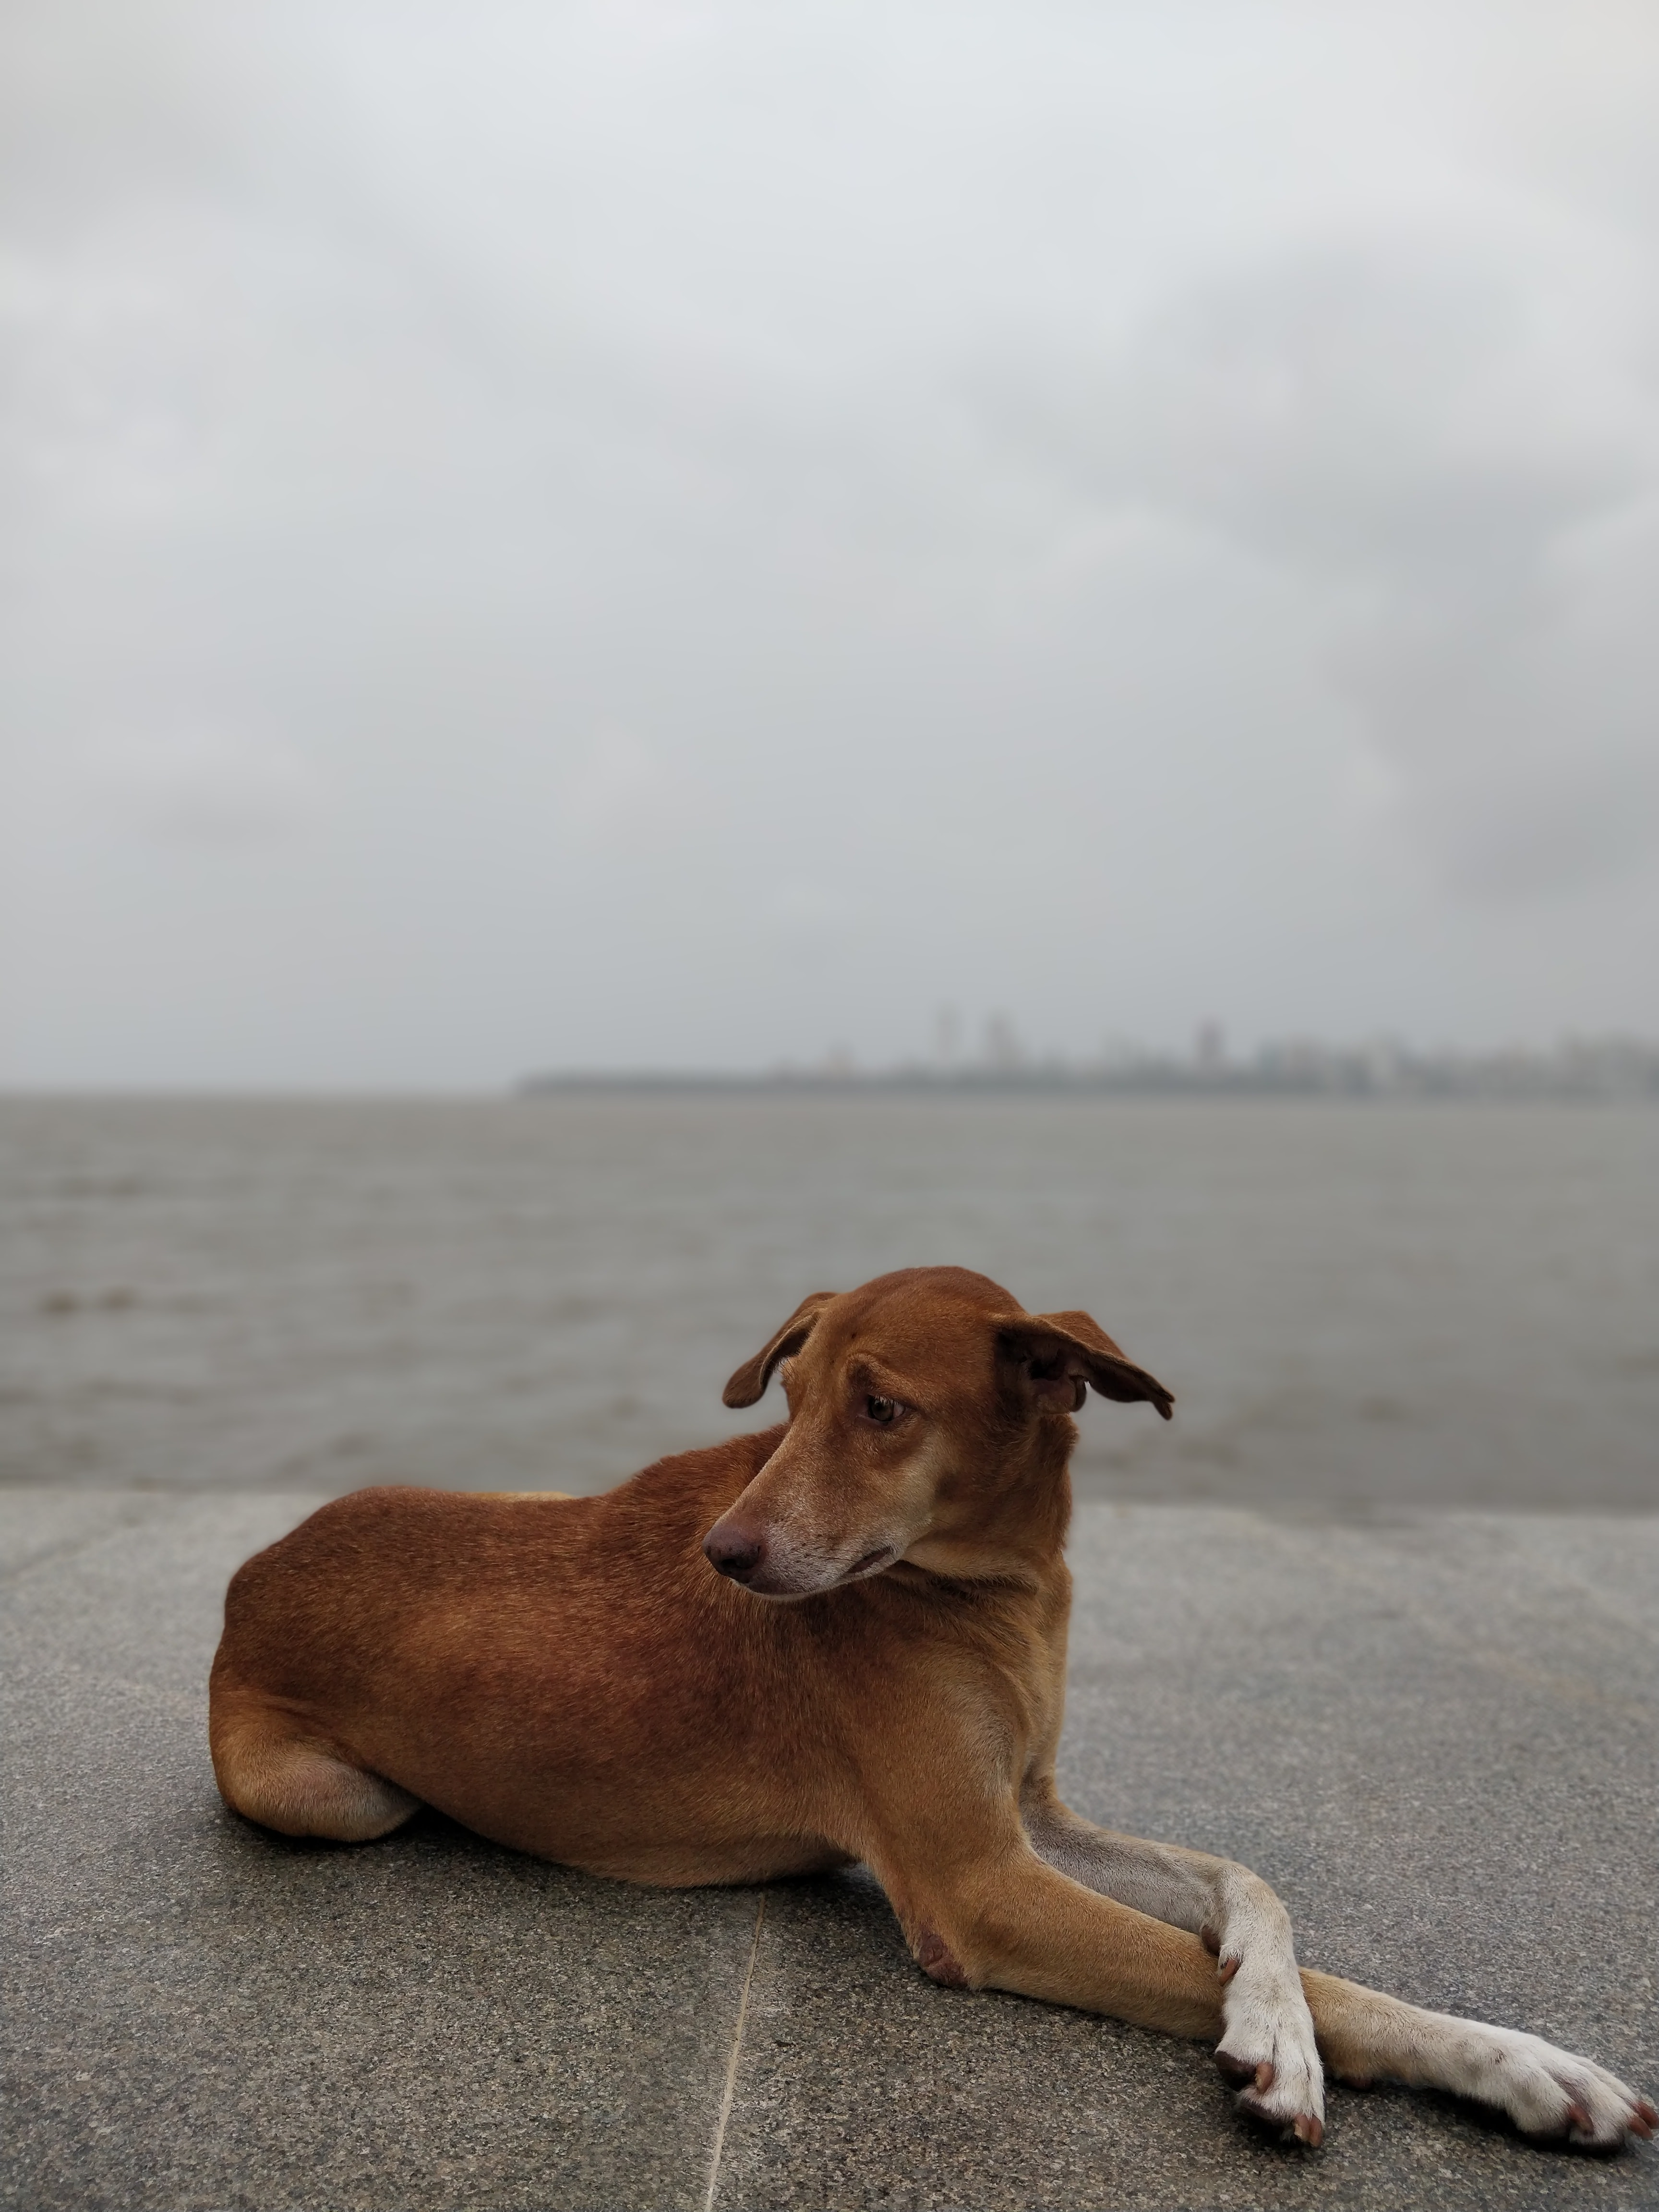 short-coated brown dog laying on pavement on a cloudy day